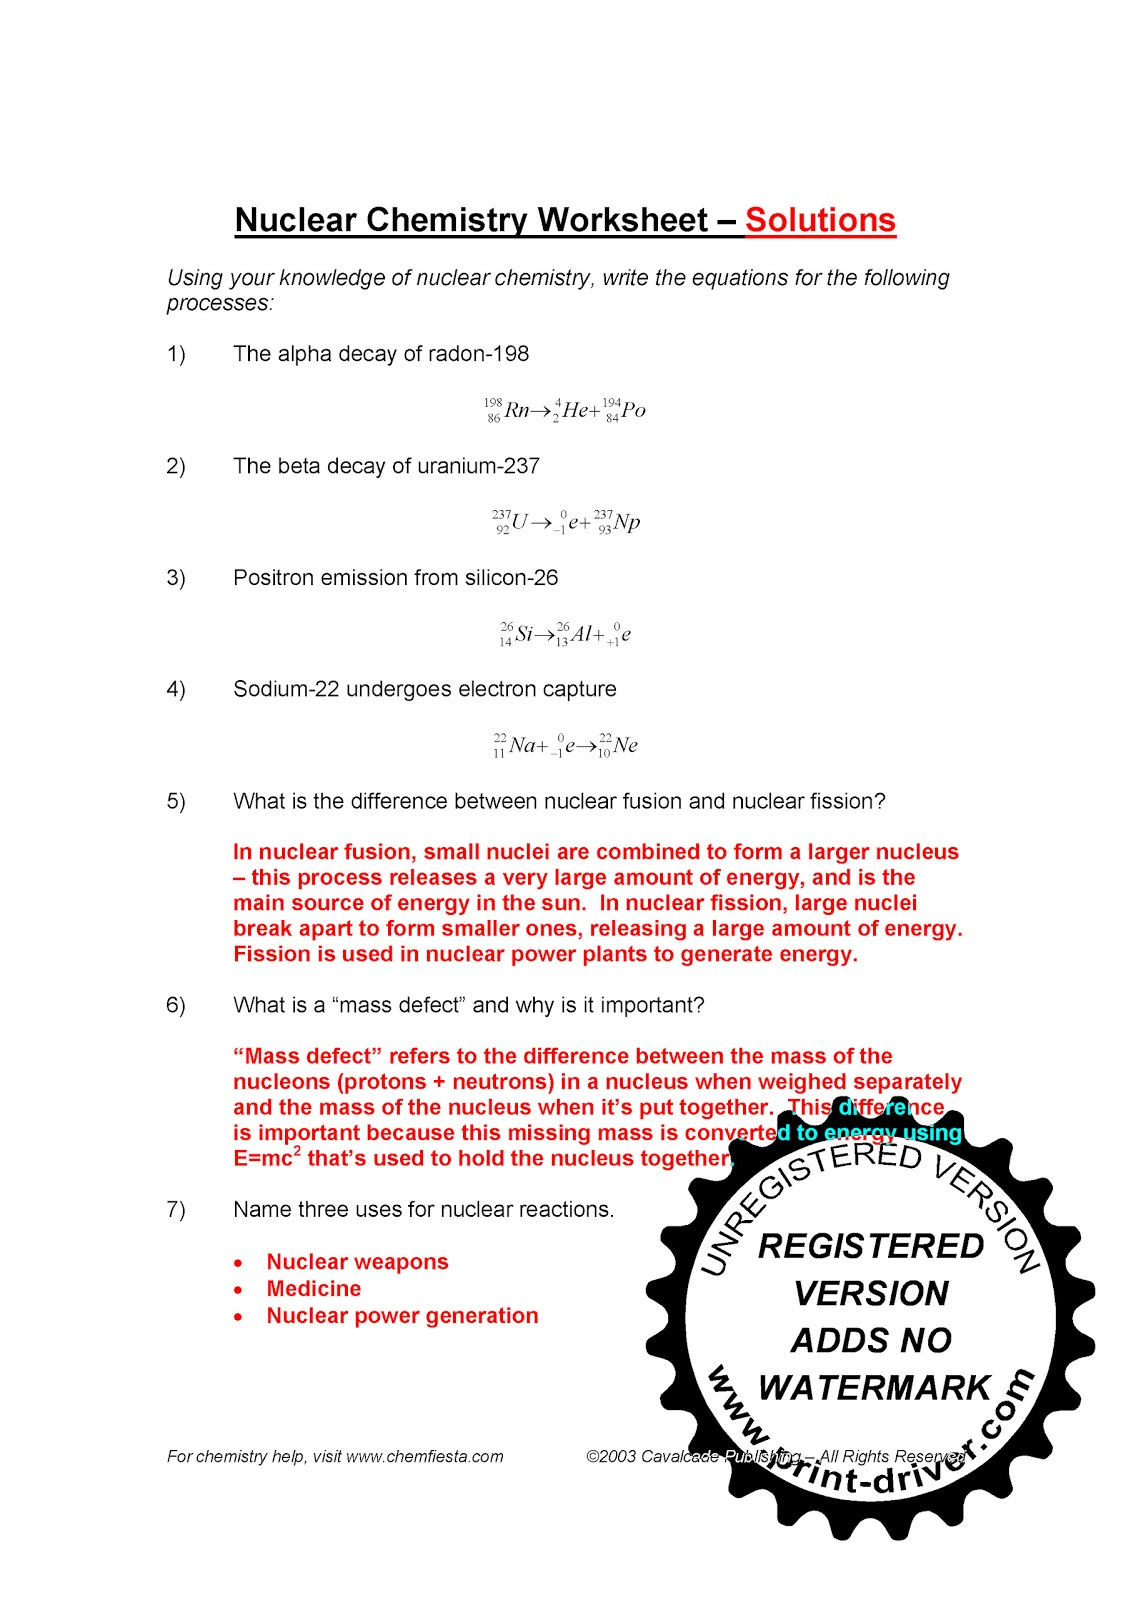 Printables Nuclear Chemistry Worksheet mr zehners chemistry class november 2010 note the difference between positron emmision 1e and beta decay 1e